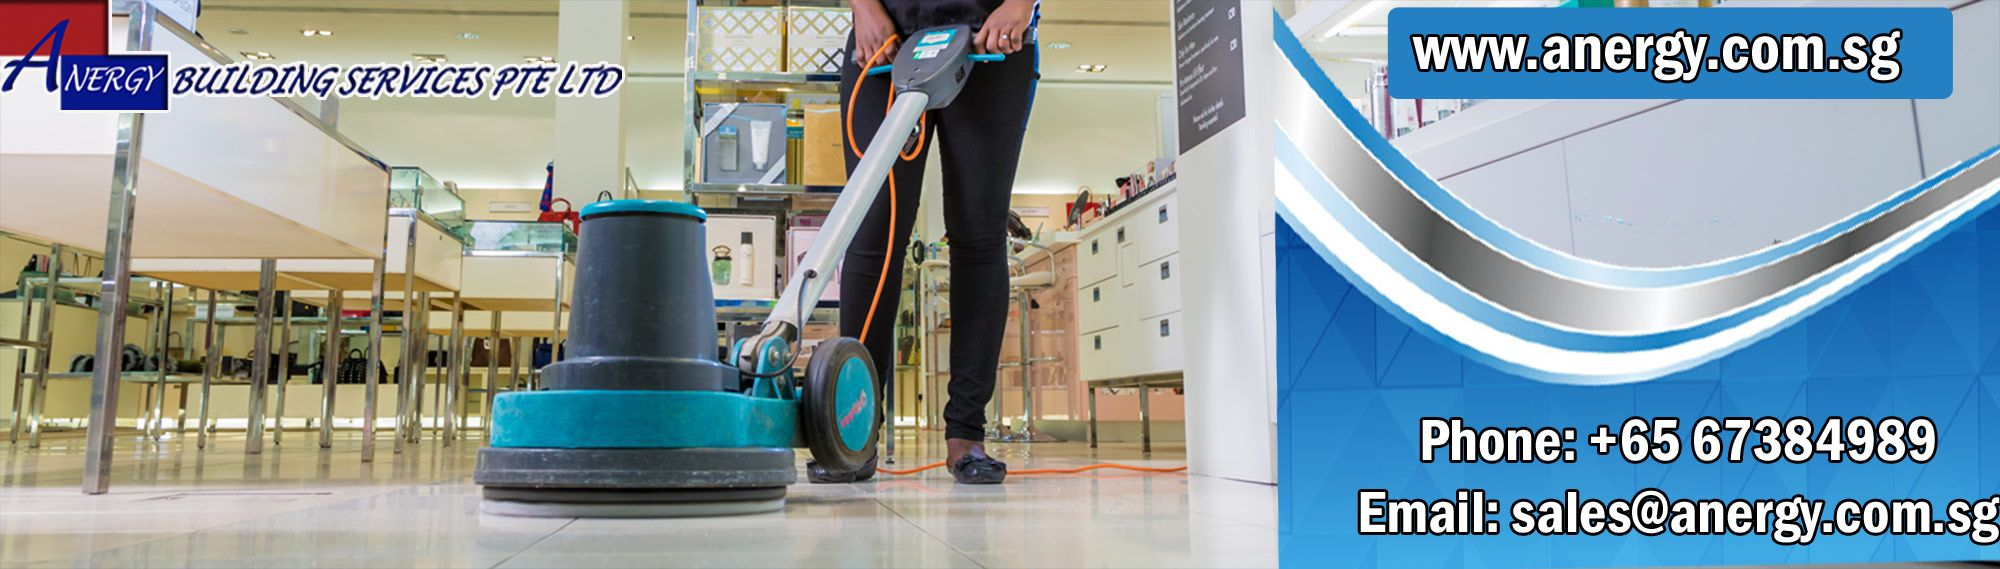 Floor Scrubbing Service Is Performed To Clean The Floor With Great